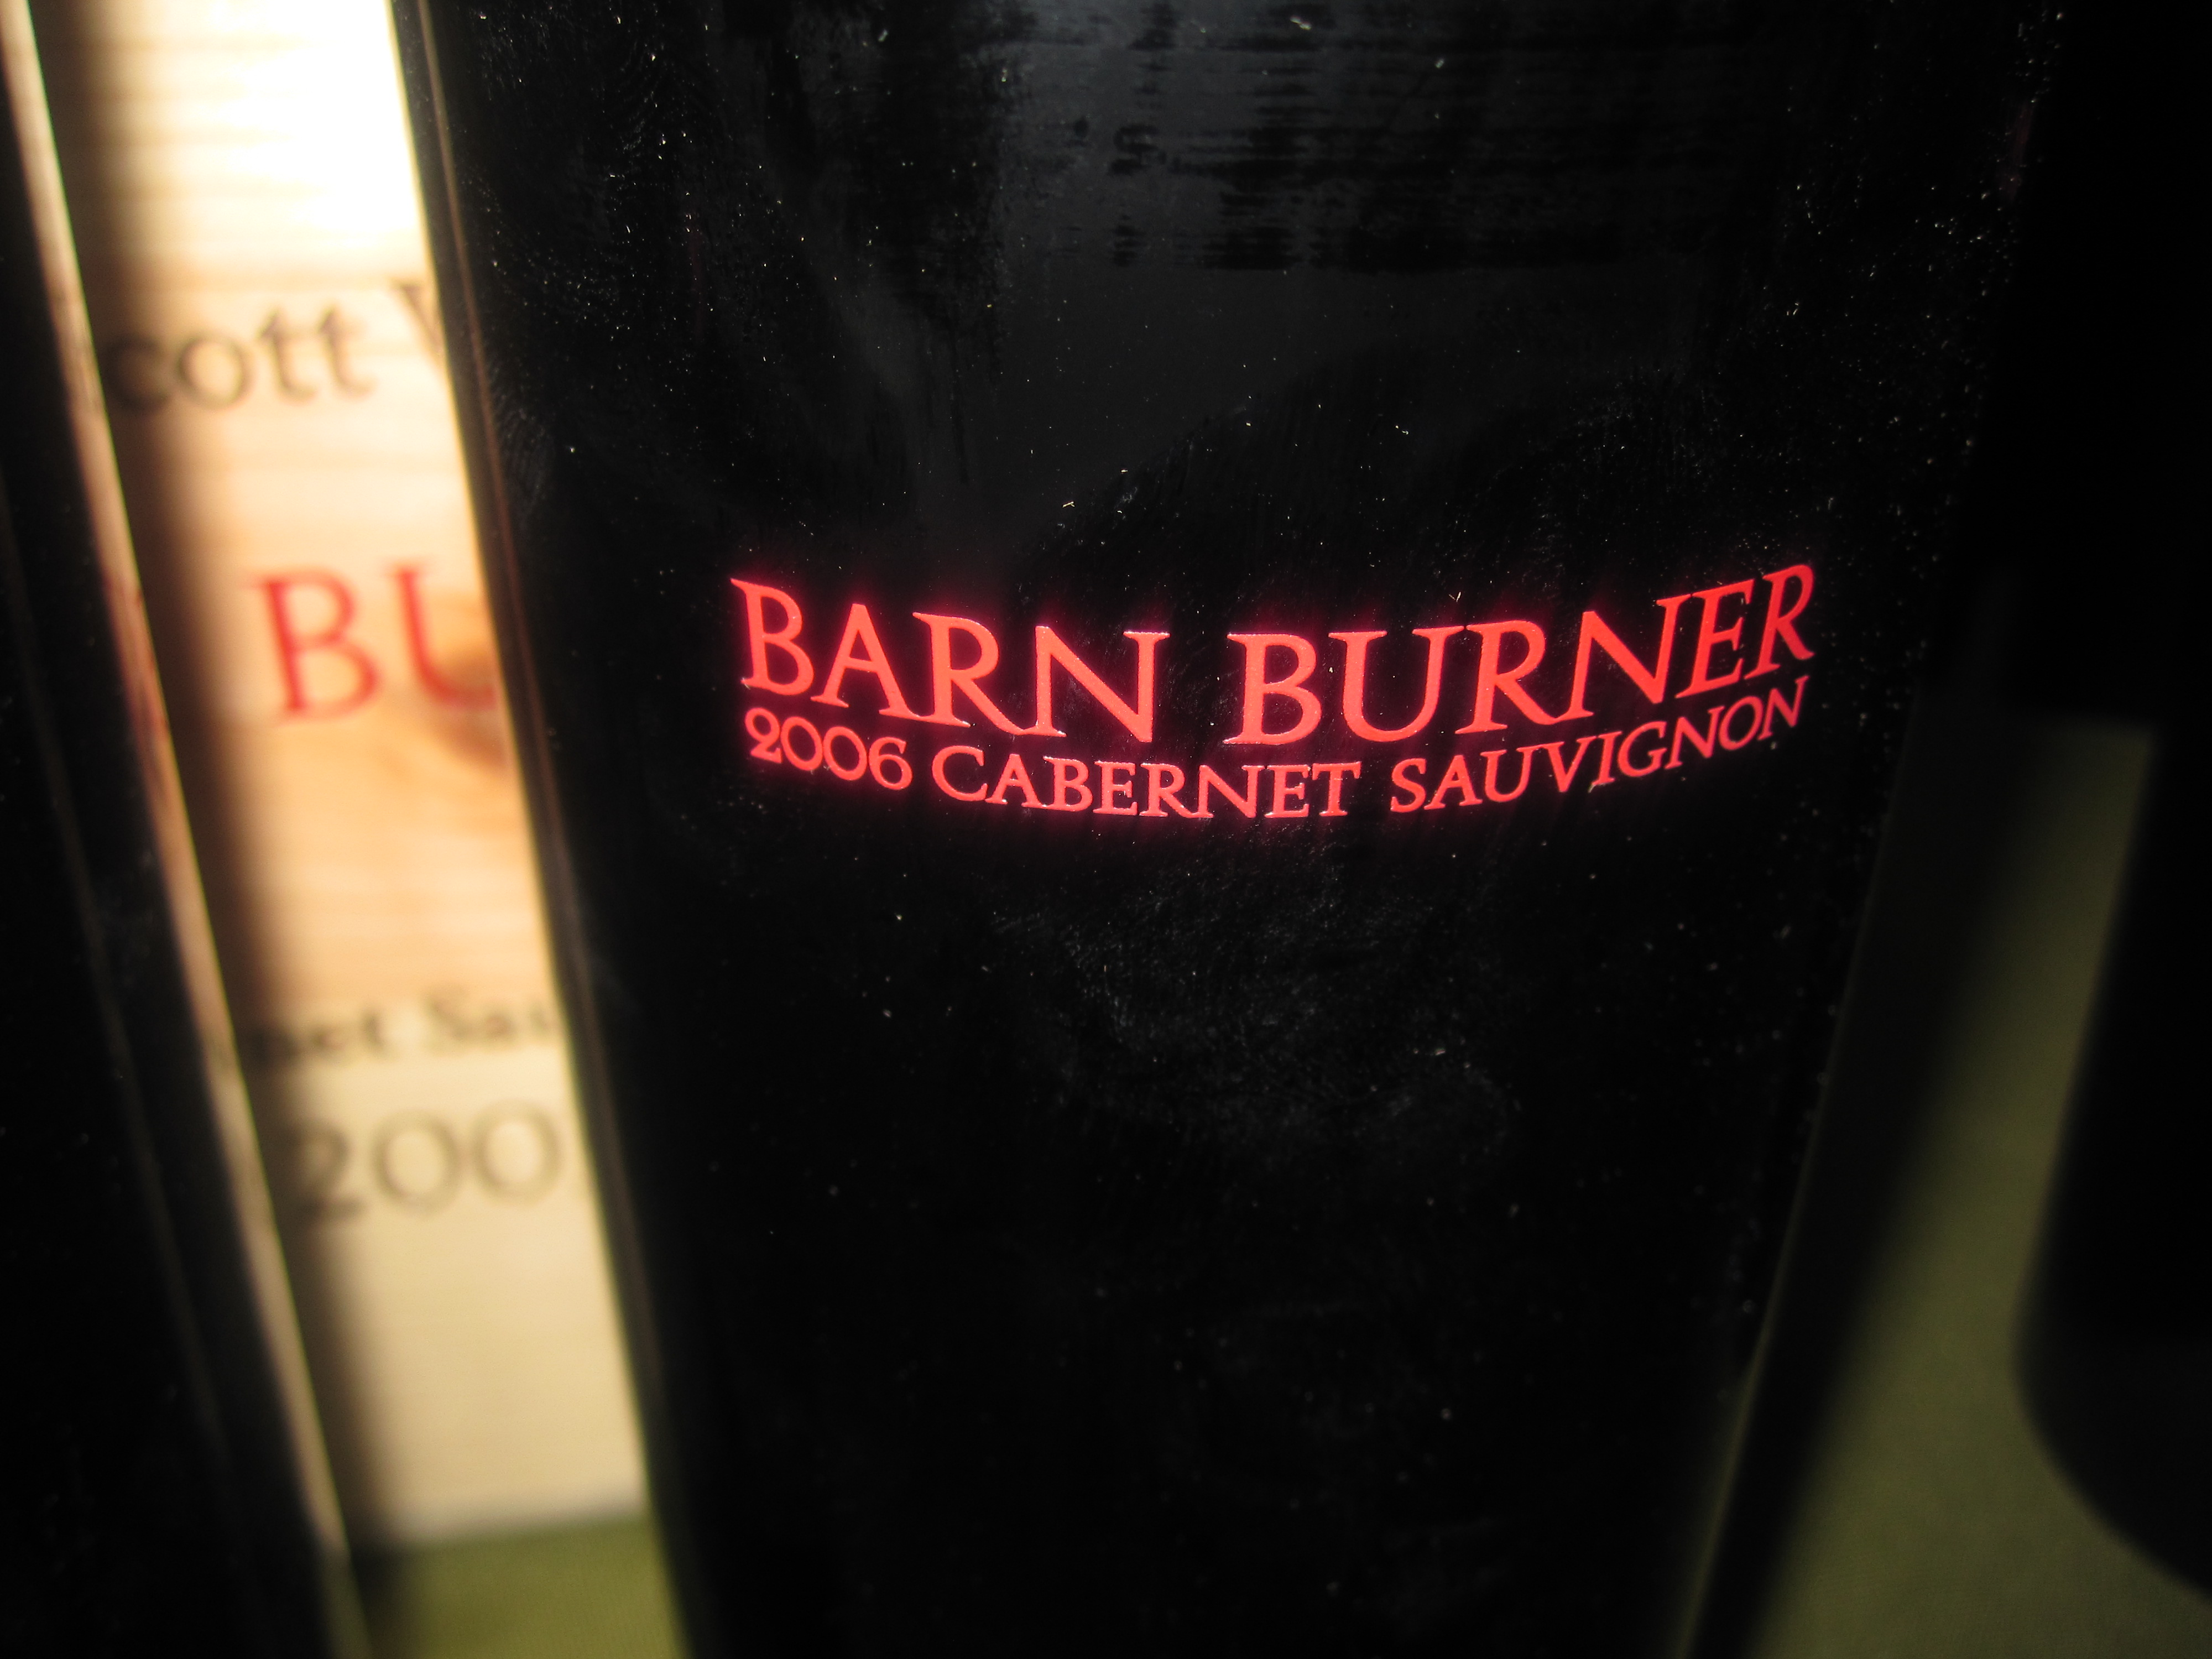 Tom Scott Vineyard's Barn Burner was one of the best Cabernet Sauvignons of my life.